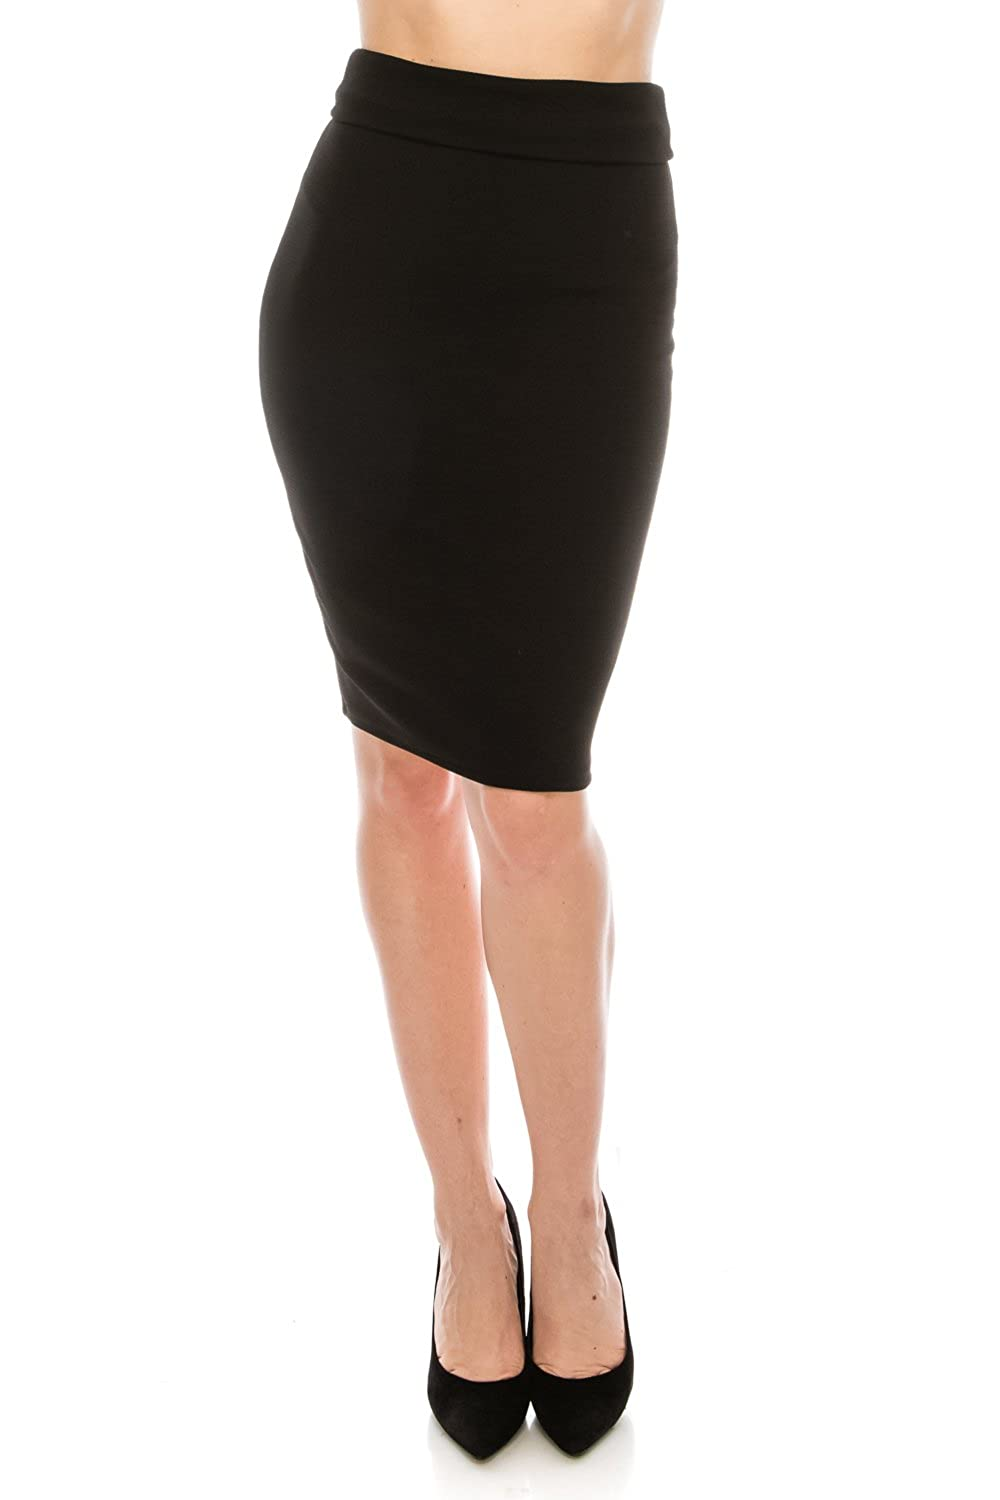 Missymissy Womens Business Casual Stretch High Waist Knee Length Pencil Skirts At Amazon Womens Clothing Store